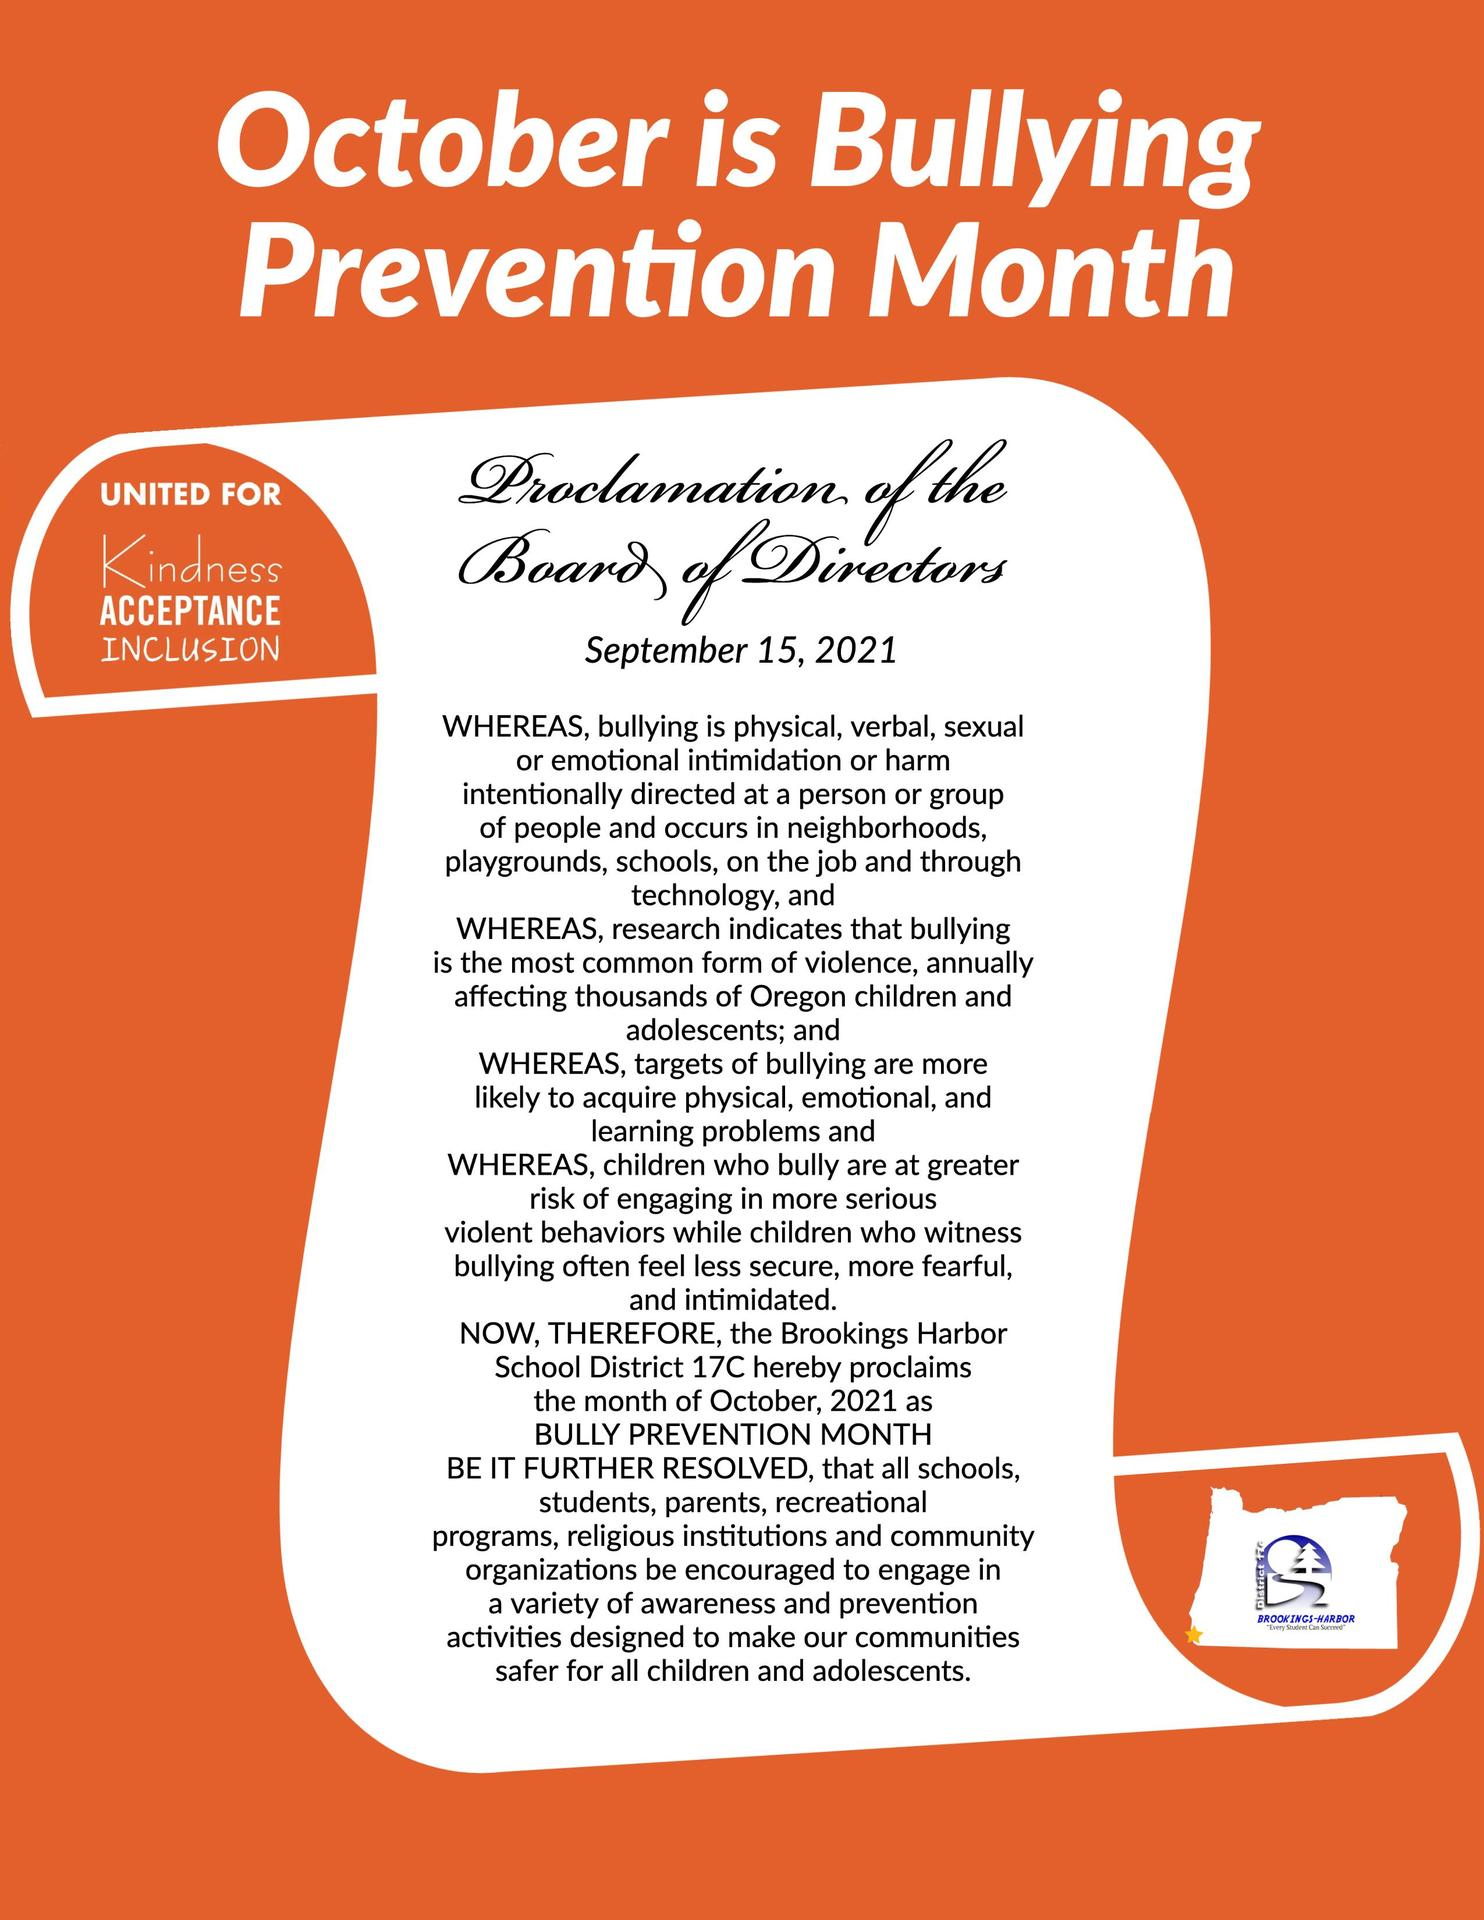 October Prevention Month: No Bullying